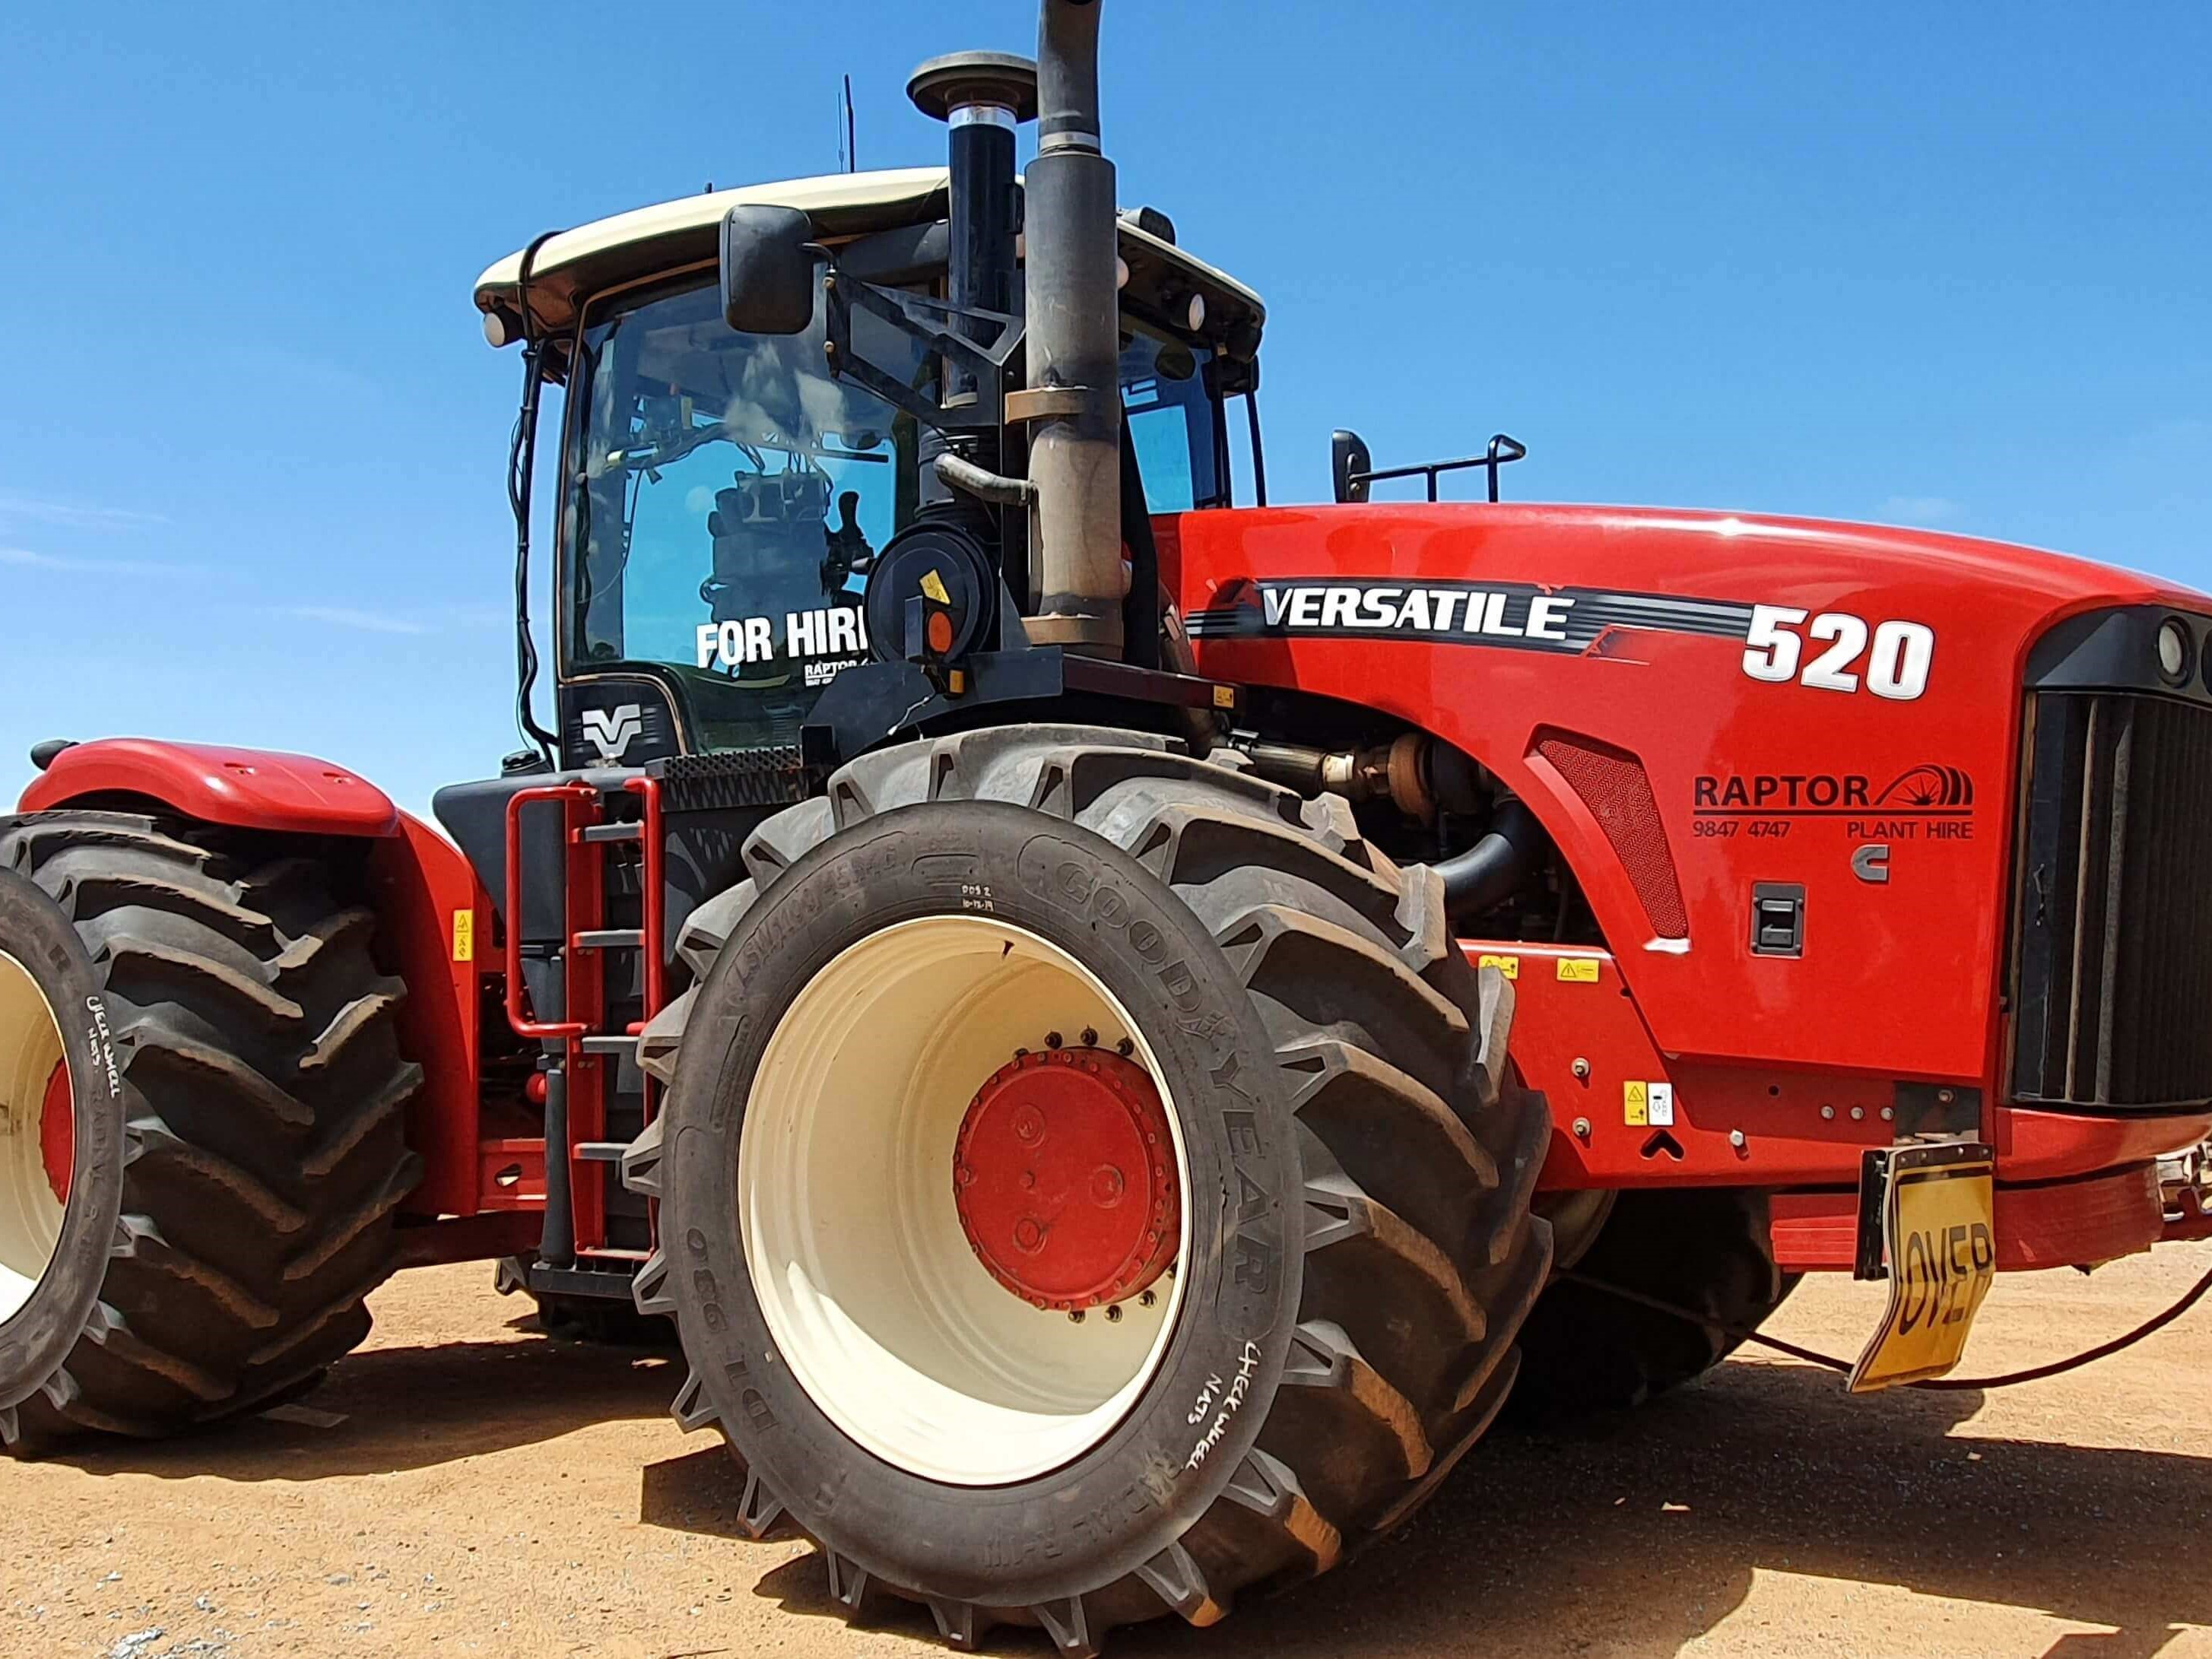 {alt=RAPTOR PLANT HIRE - LARGE TRACTORS-2, height=2182, max_height=2182, max_width=2909, src=https://f.hubspotusercontent40.net/hubfs/4532094/RAPTOR%20PLANT%20HIRE%20-%20LARGE%20TRACTORS-2.jpg, width=2909}